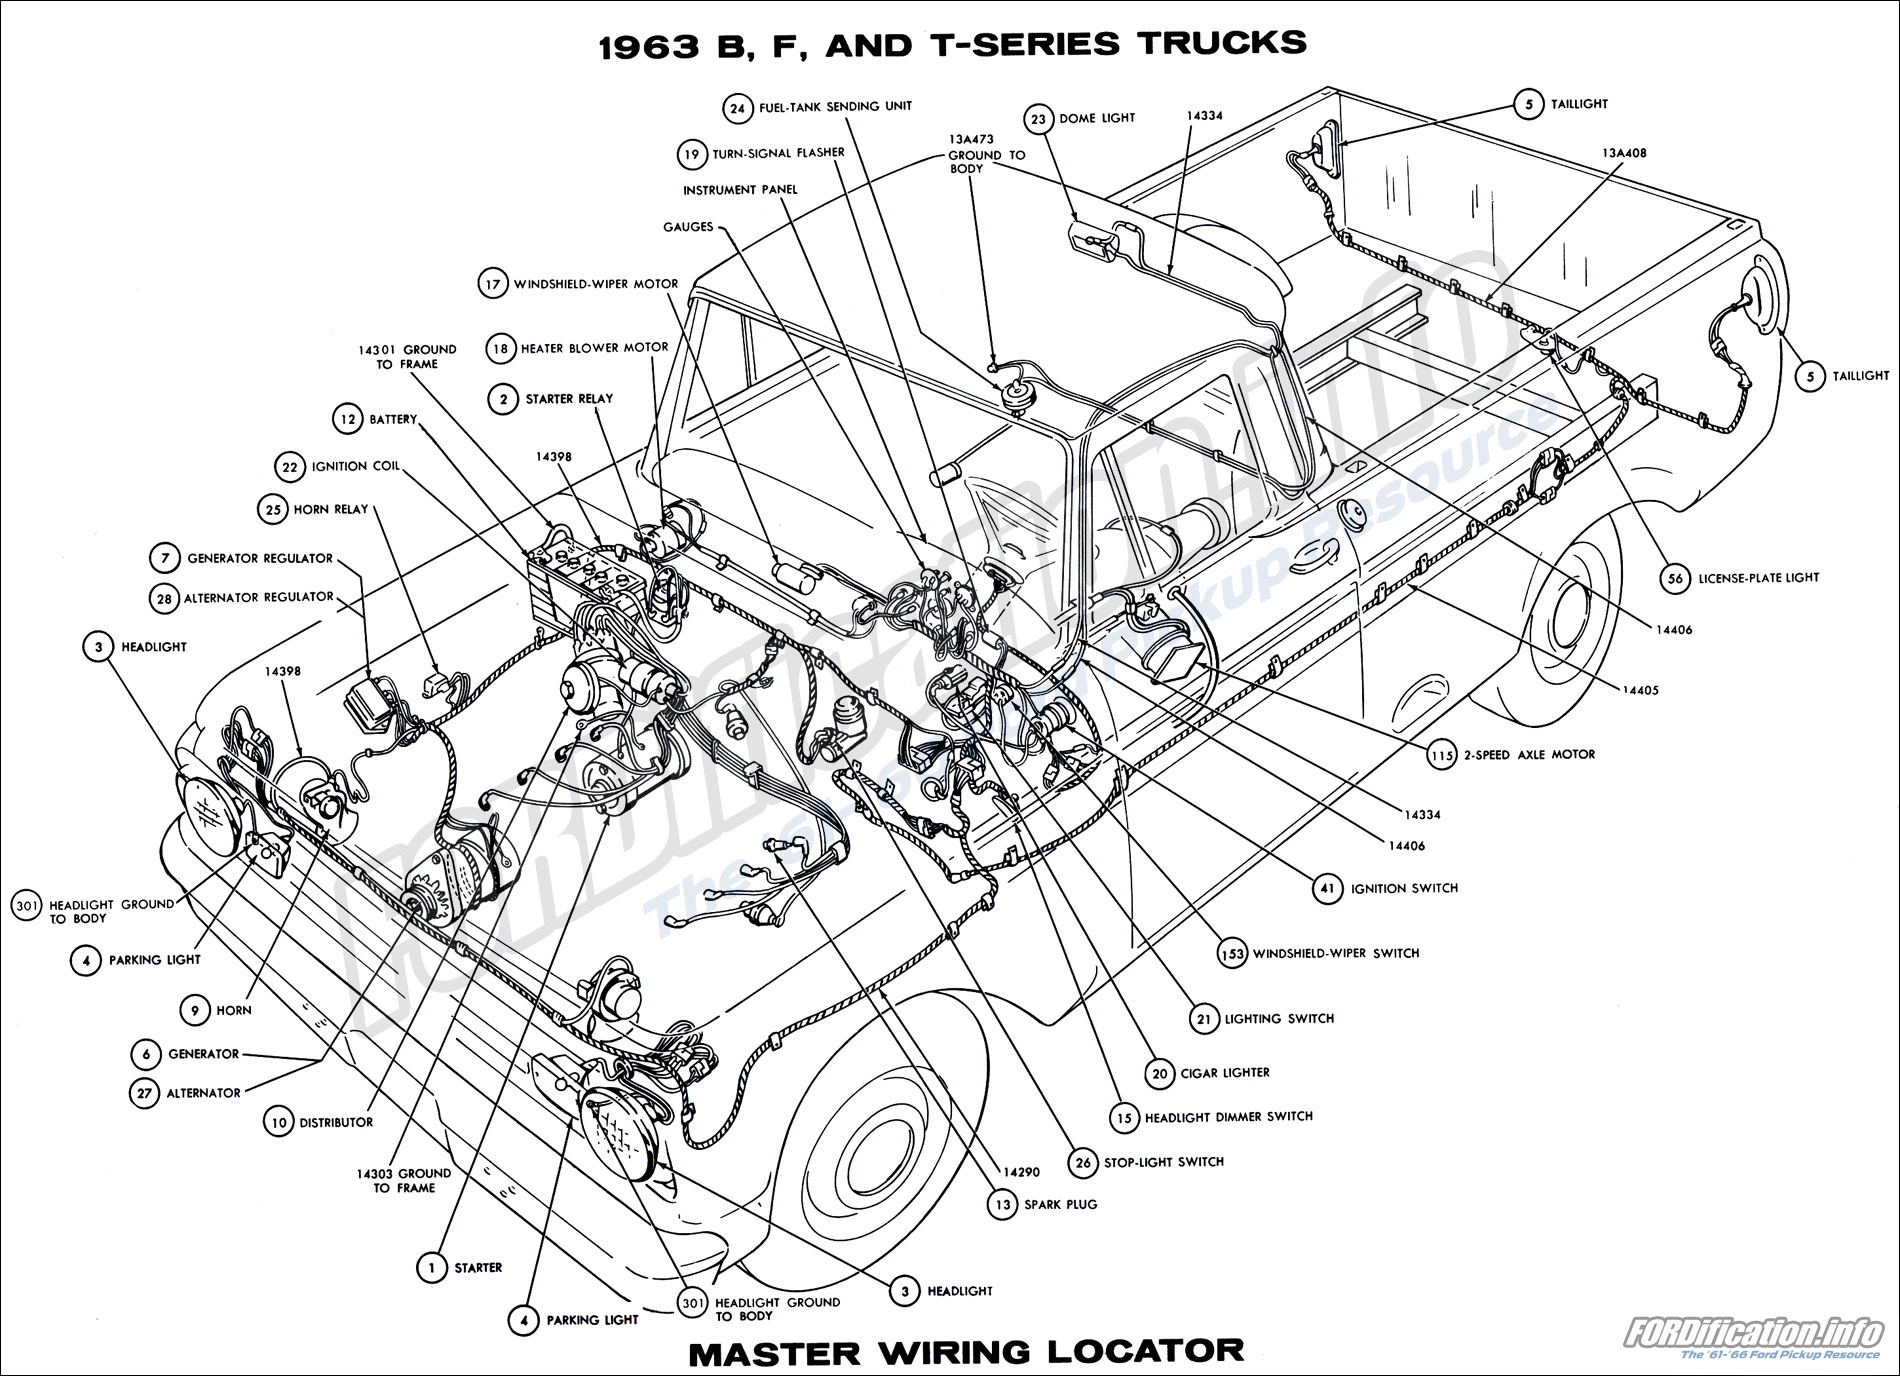 1964 Ford F250 Wiring Diagram Worksheet And 1978 Ignition Wires Schematic For 1963 F100 Online Schematics Rh Delvato Co F 250 Super Duty